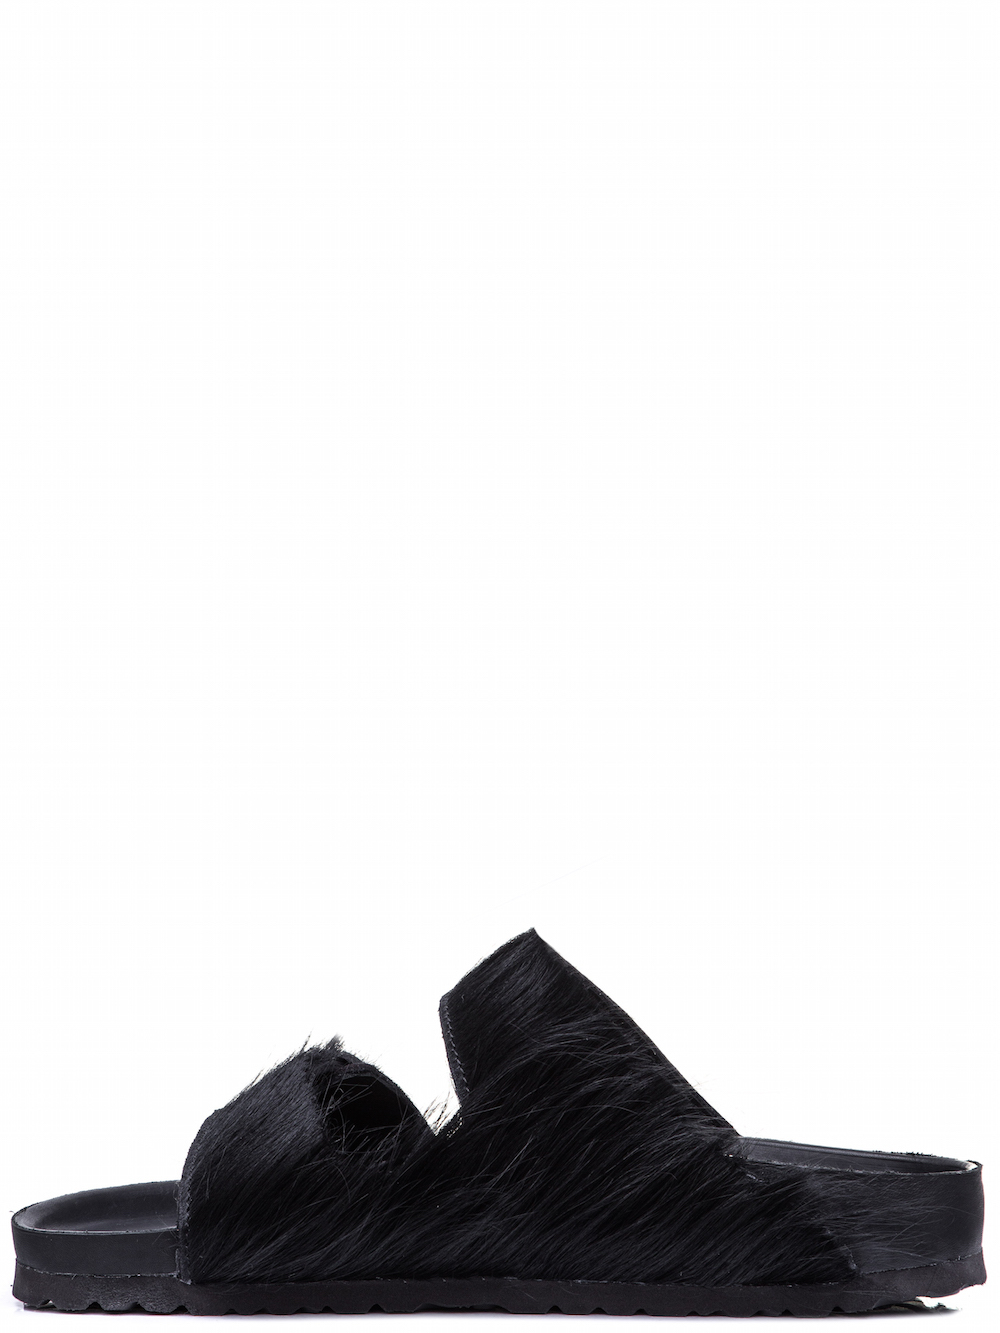 RICK OWENS X BIRKENSTOCK ARIZONA SANDAL IN BLACK FEATURE A COW FUR